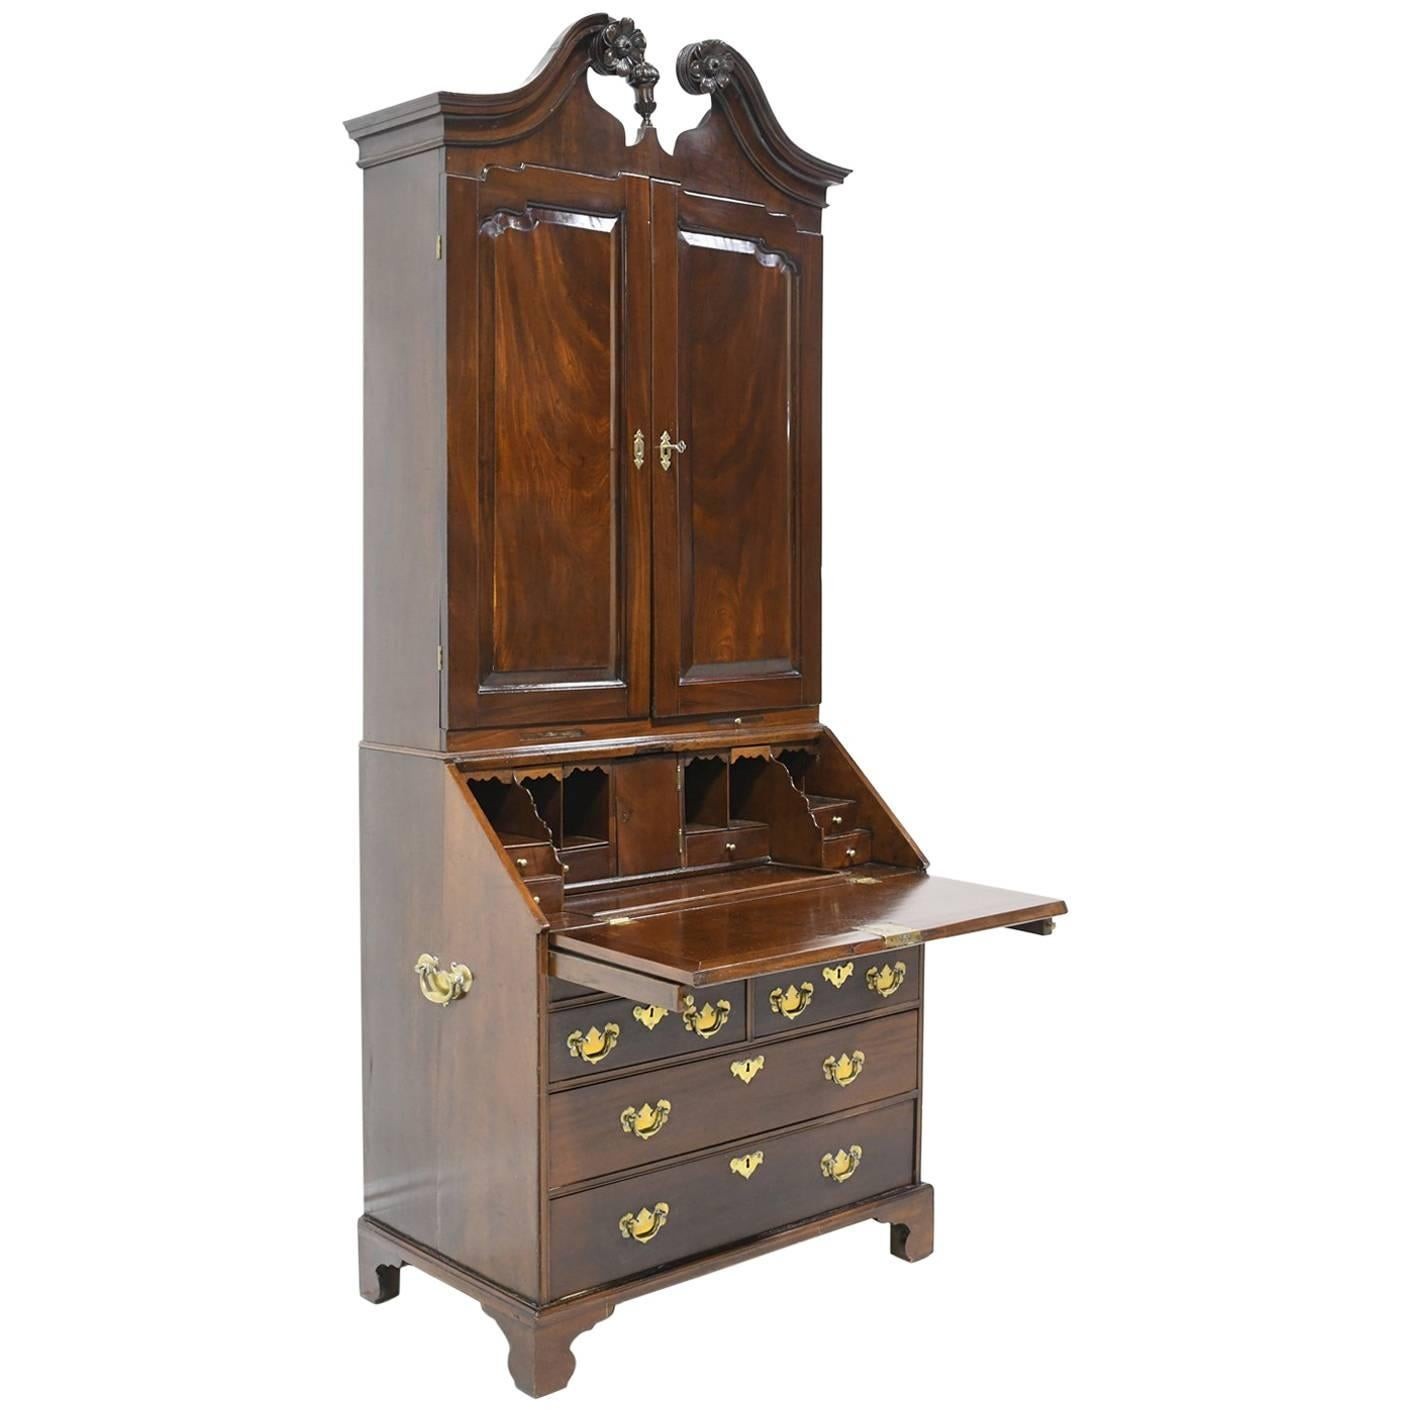 Antique English George III Slant-Front Secretary w/ Bookcase in Cuban Mahogany